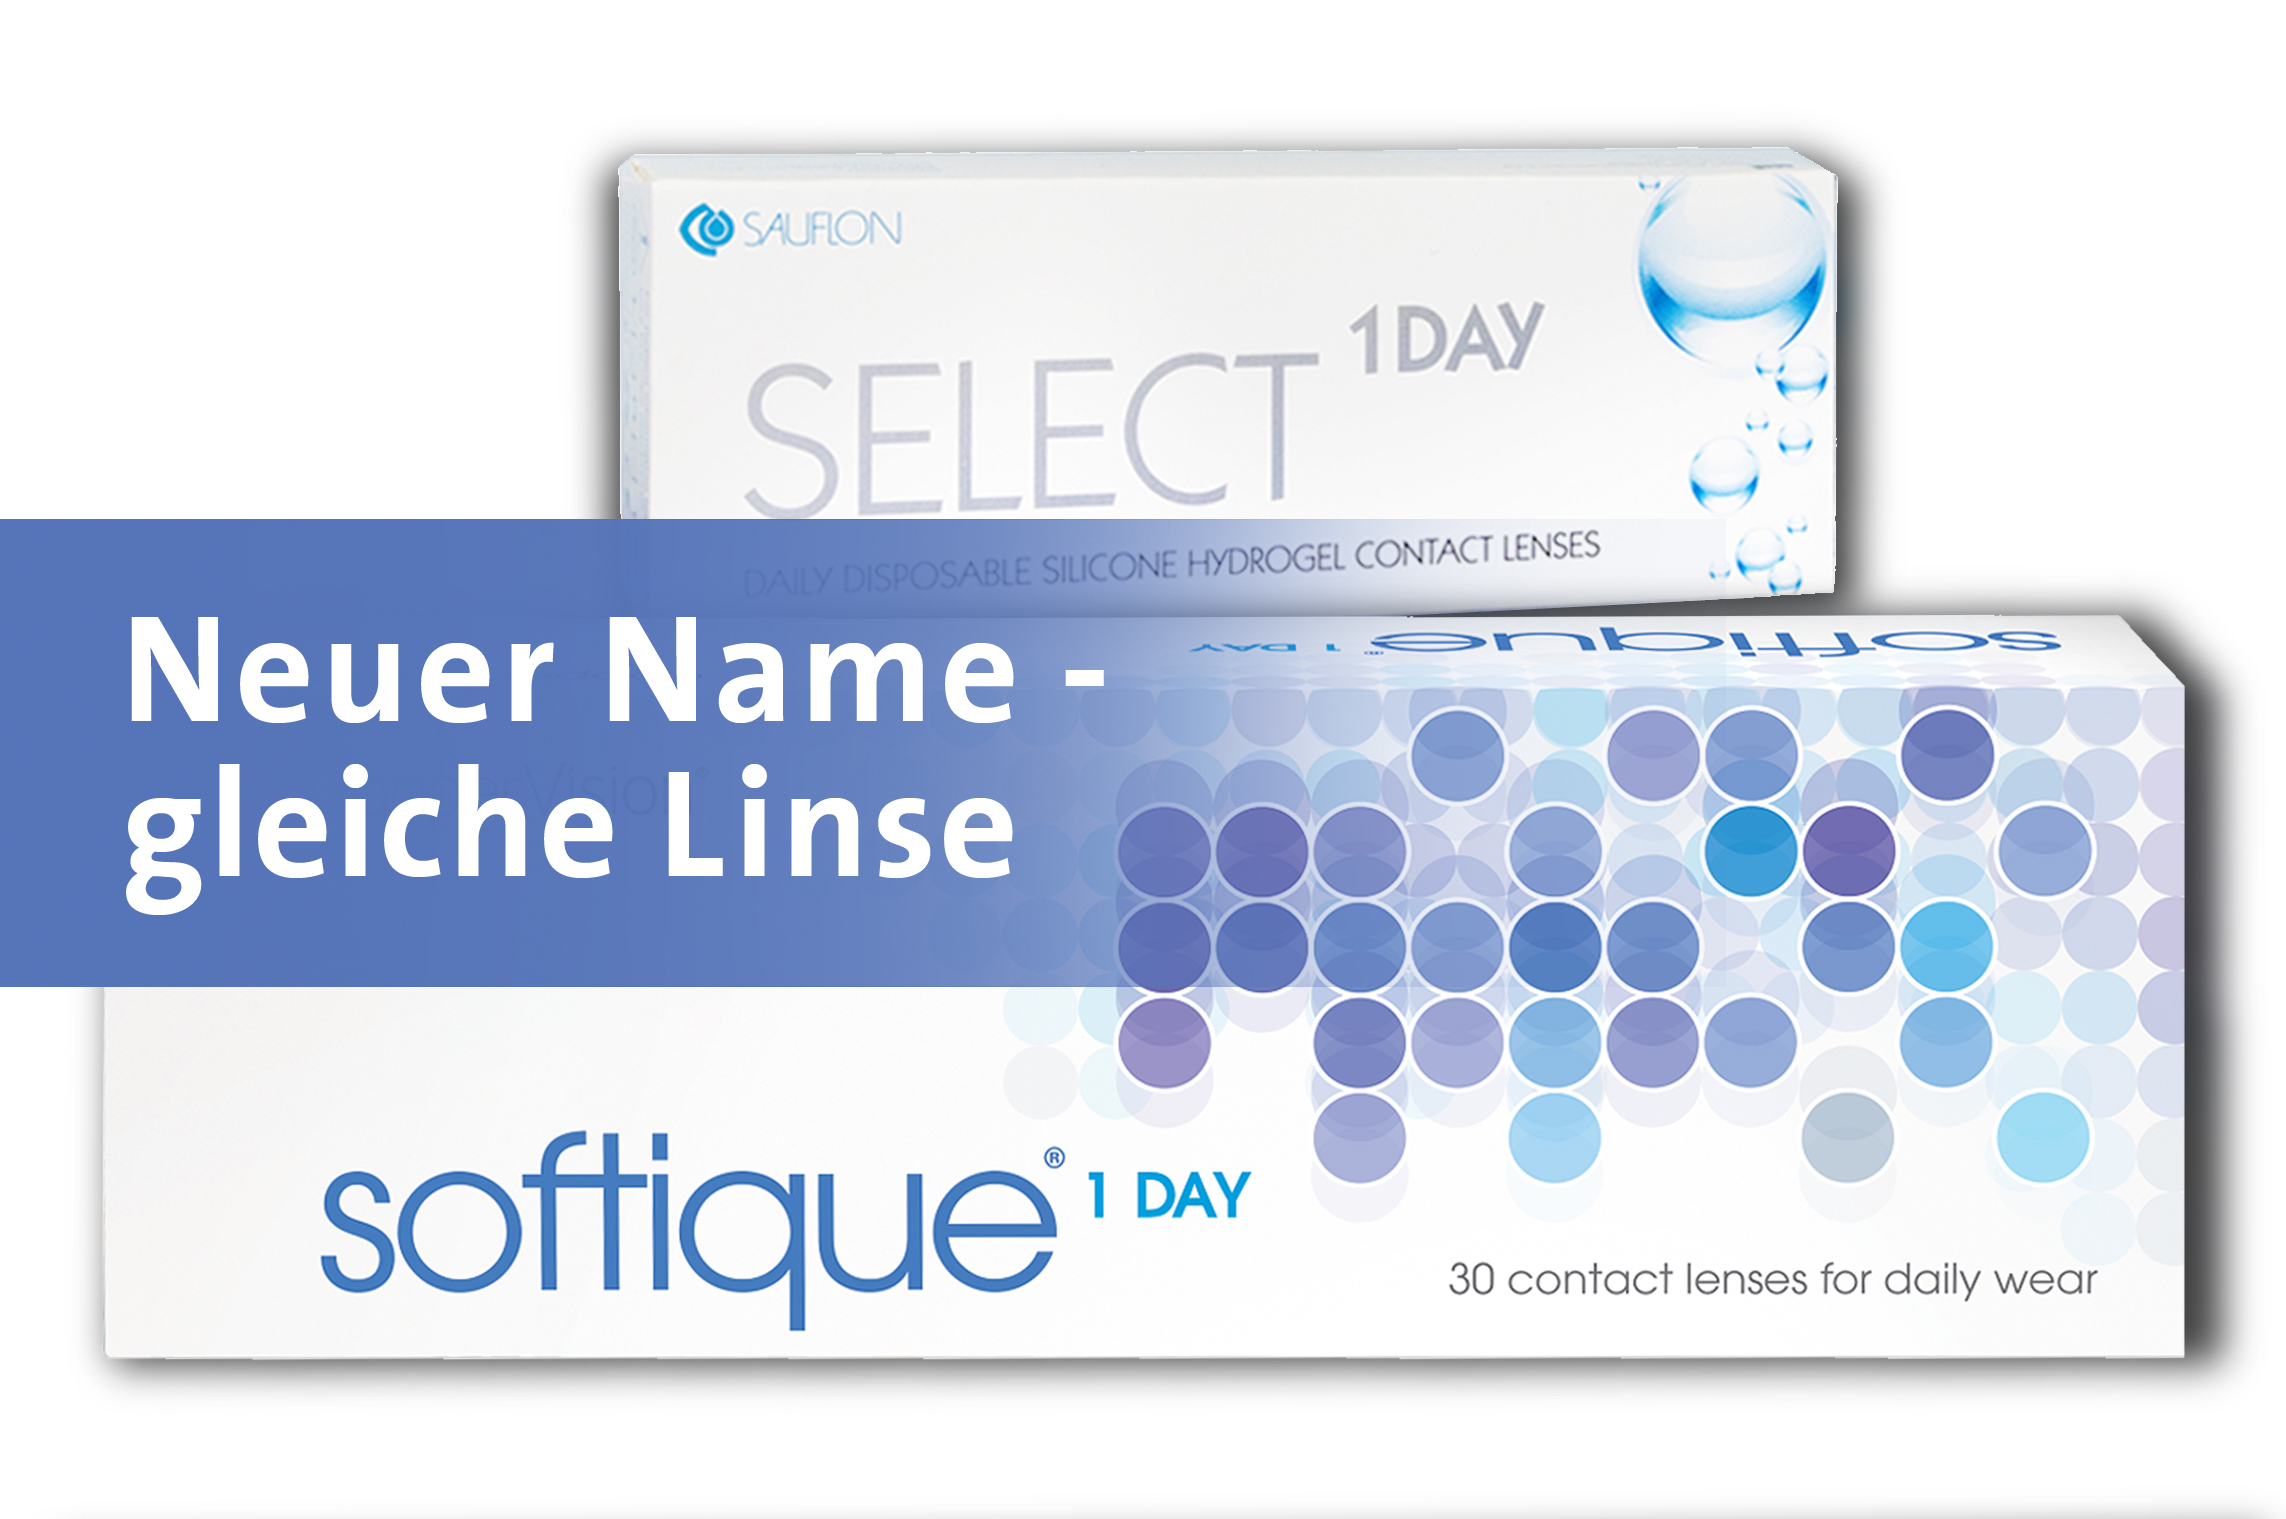 NEUE VERPACKUNG: Select. 1 Day ist jetzt Softique 1 Day